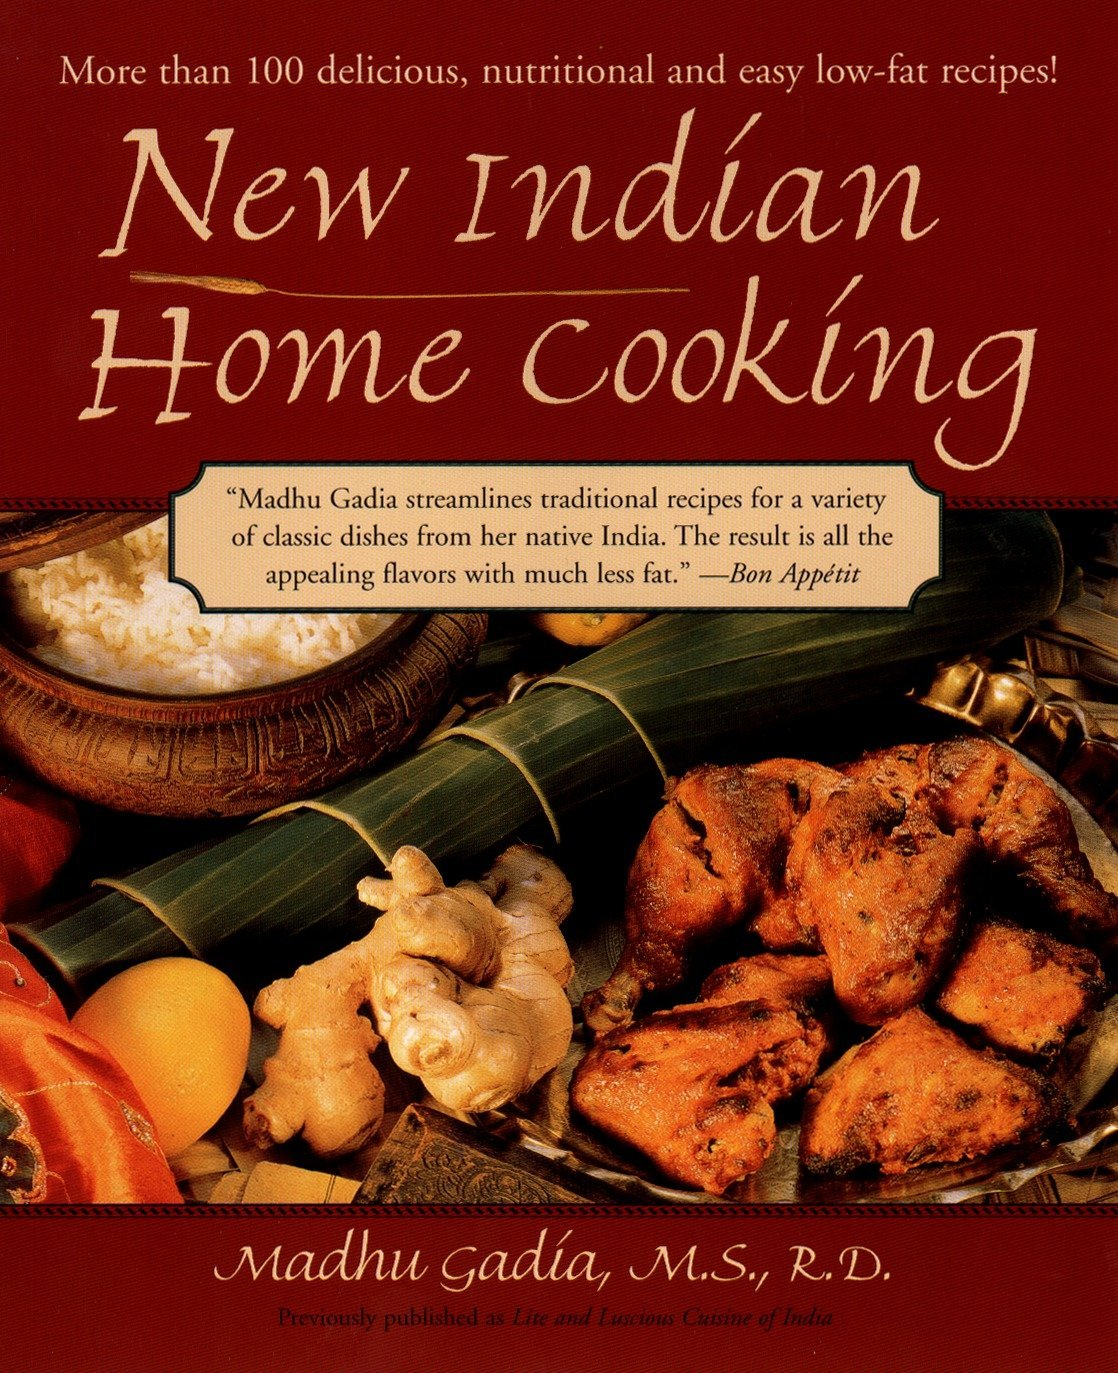 New Indian Home Cooking: More Than 100 Delicious, Nutritional and Easy Low-Fat  Recipes: Madhu Gadia: 9781557883438: Amazon.com: Books